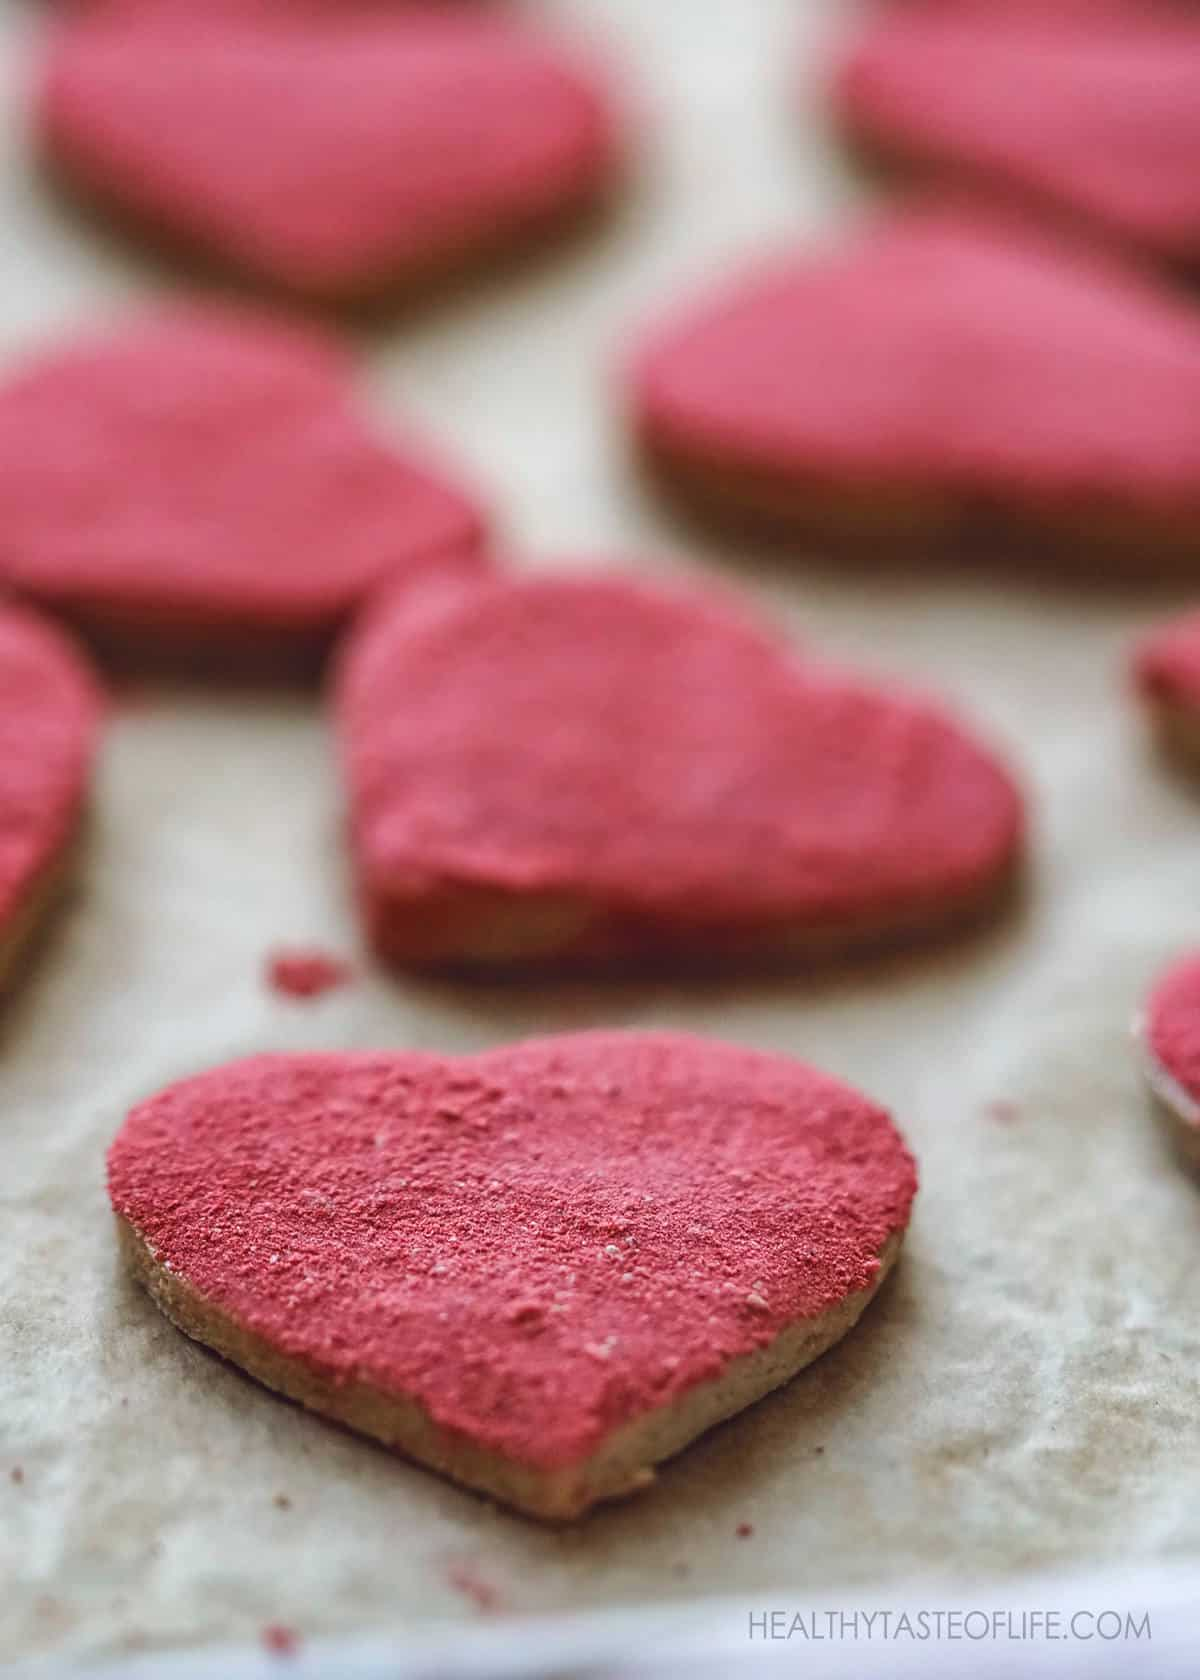 Heart shaped cookies with strawberry dusting - healthy vegan gluten free, dairy free, egg free recipe